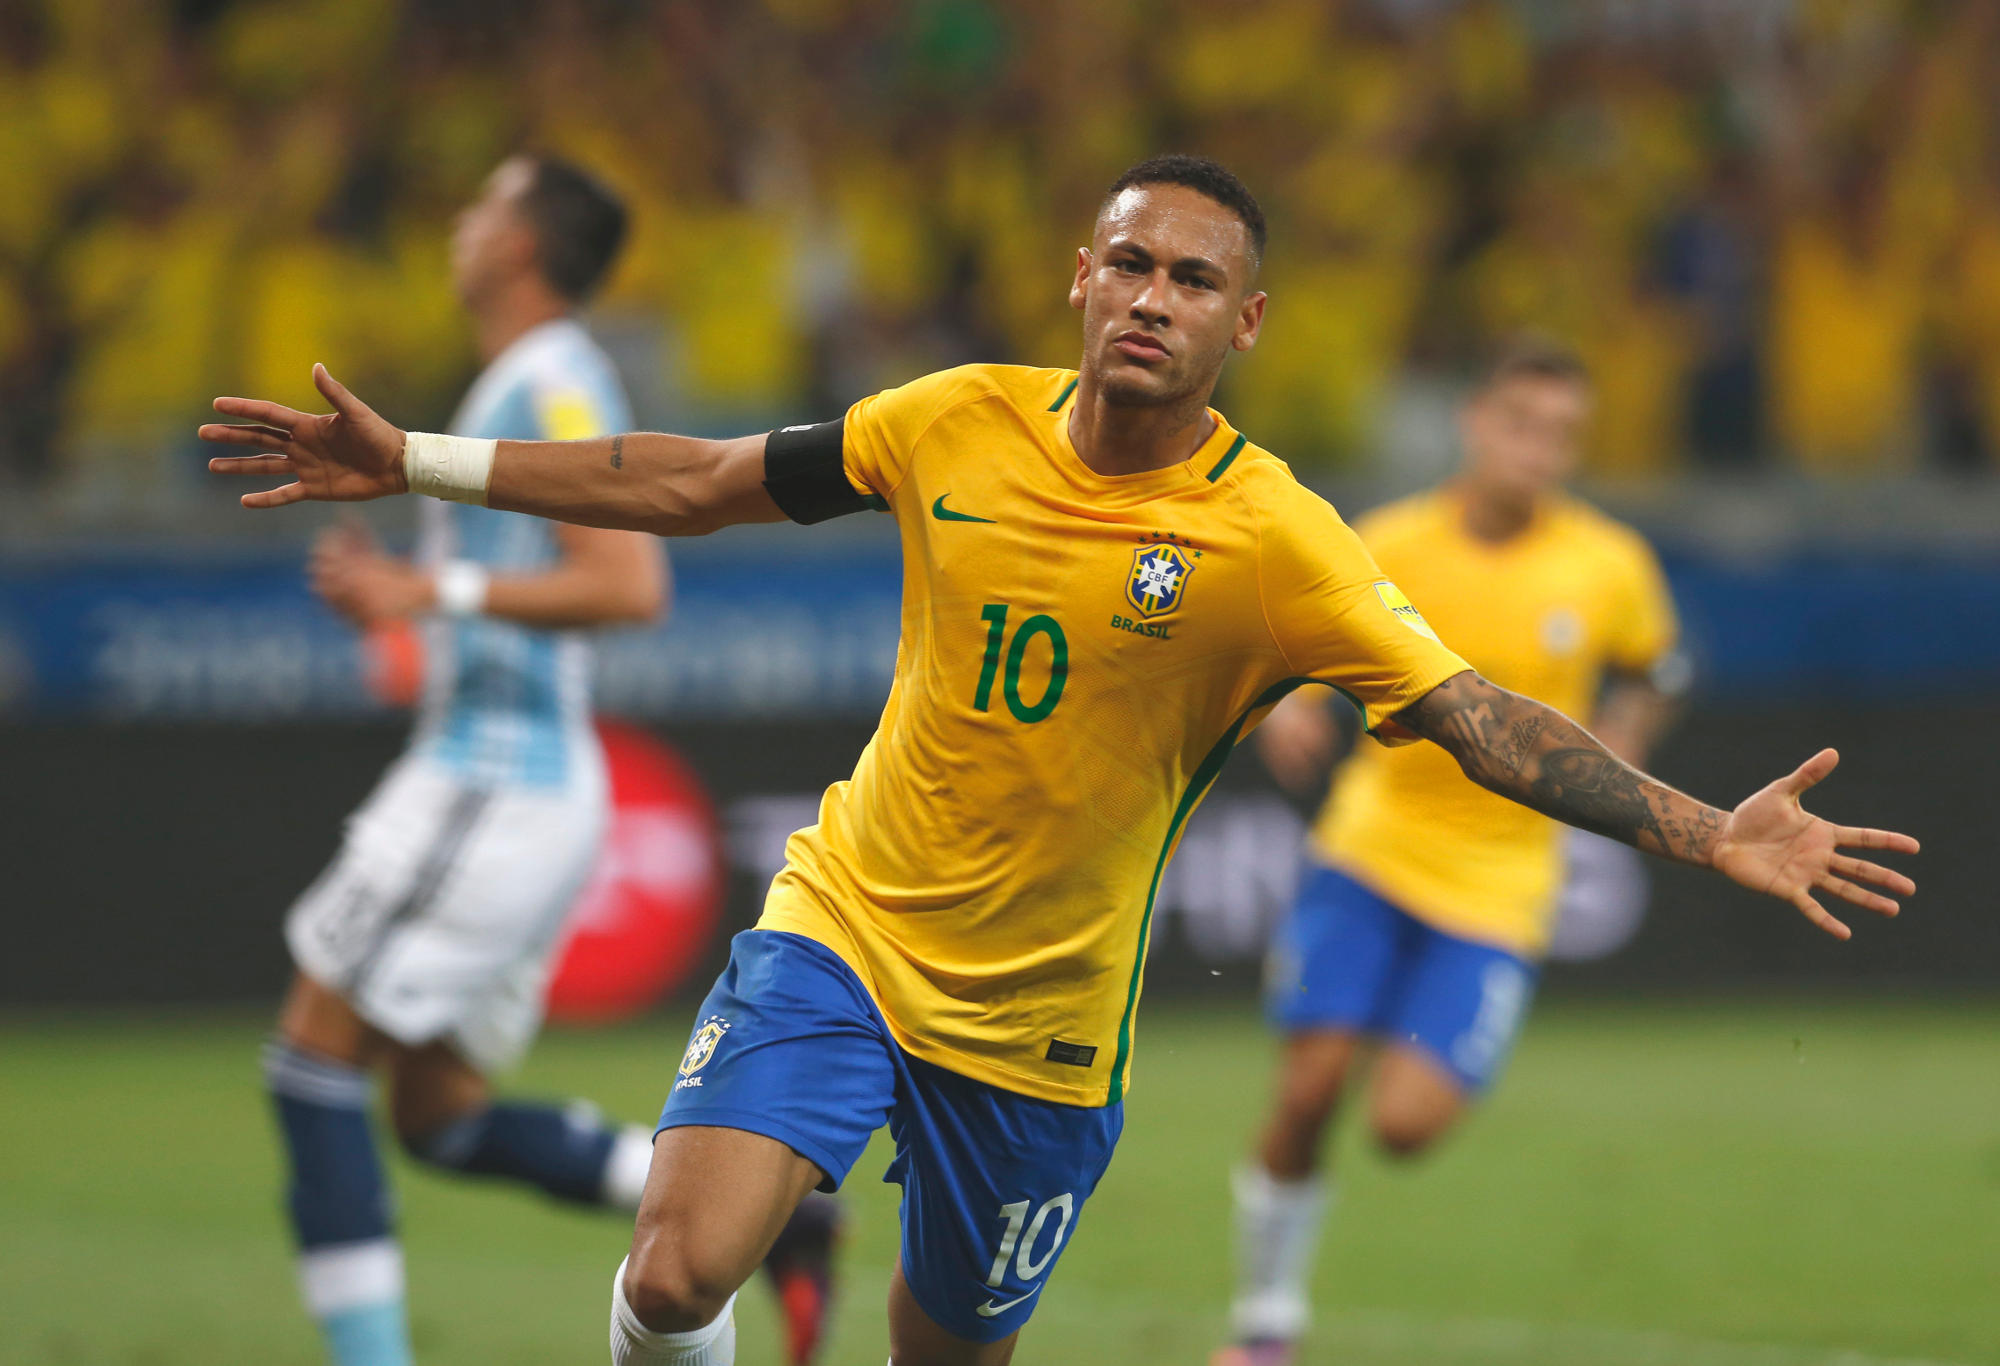 Brazil's Neymar celebrates after scoring his side's second goal against Argentina during a 2018 World Cup qualifying soccer match in Belo Horizonte, Brazil. Brazil's national soccer team is the first to qualify for next year's World Cup. Despite the success, the sporting scene at home is littered with bribes and corruption linked to the World Cup and last year's Rio de Janeiro Olympics.